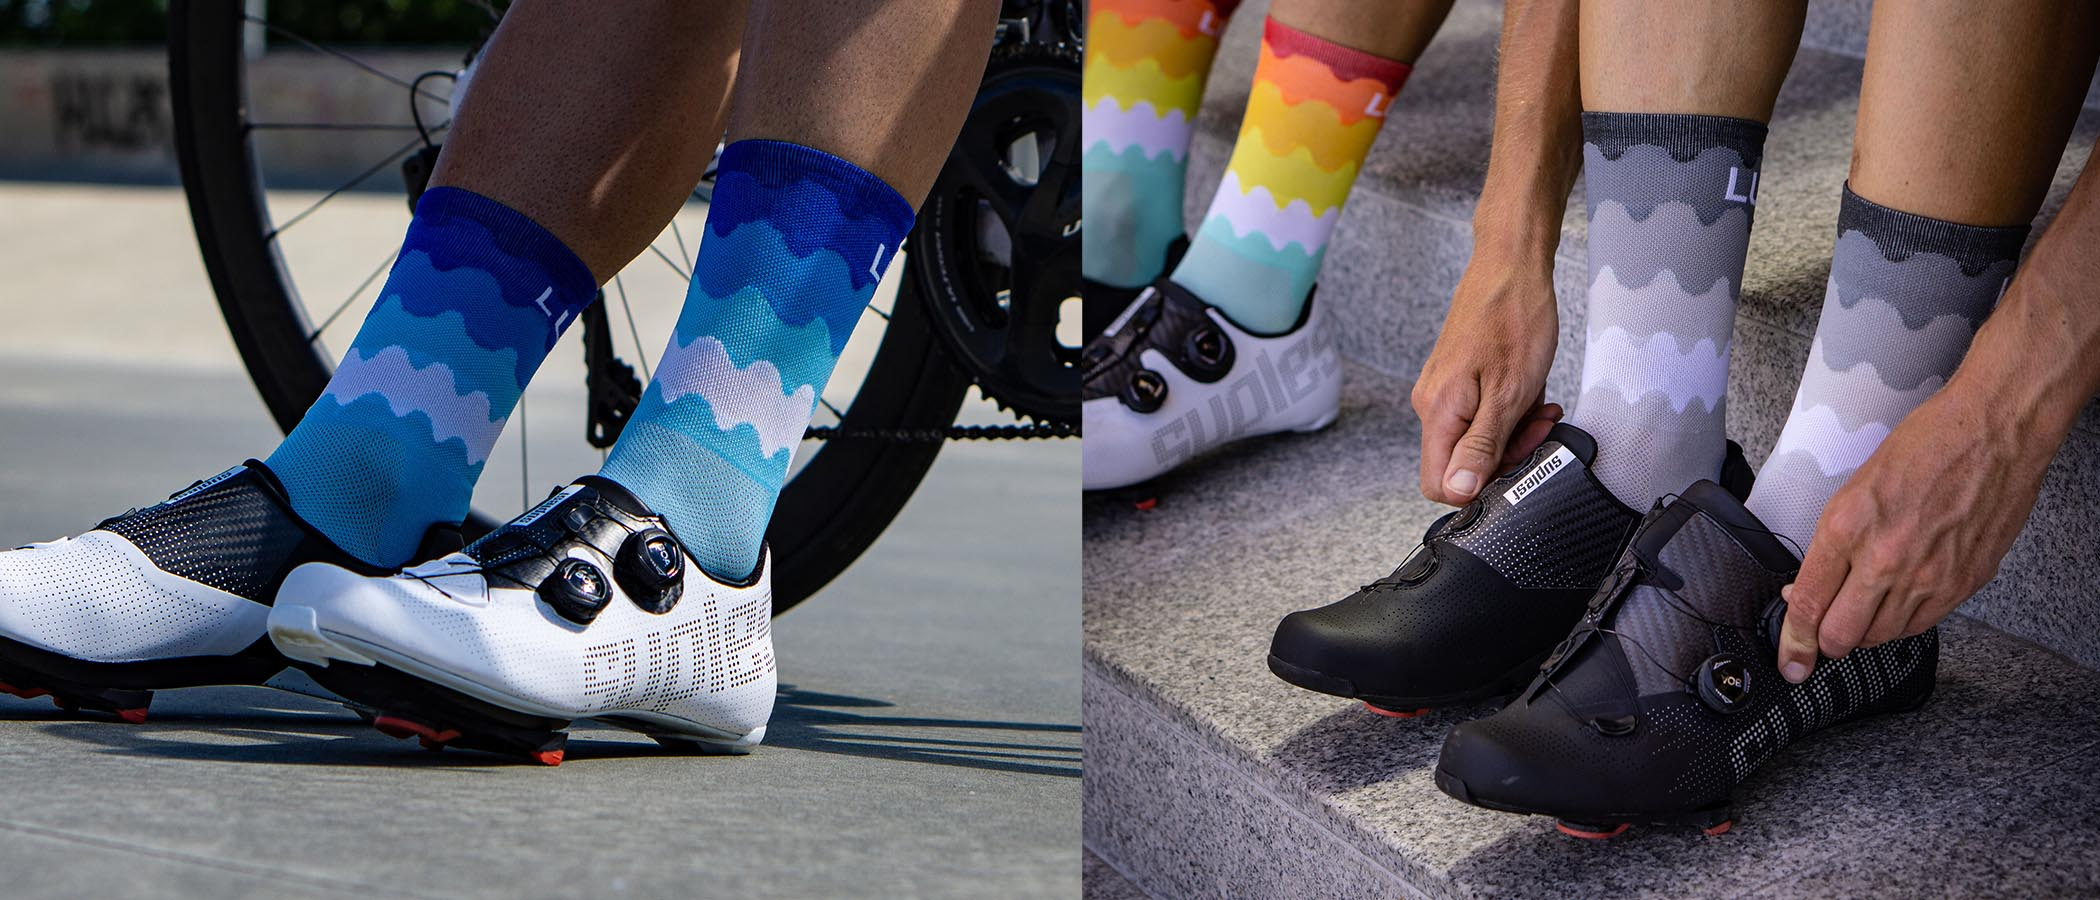 wave style original look of the Luxa Tenerife cycling socks